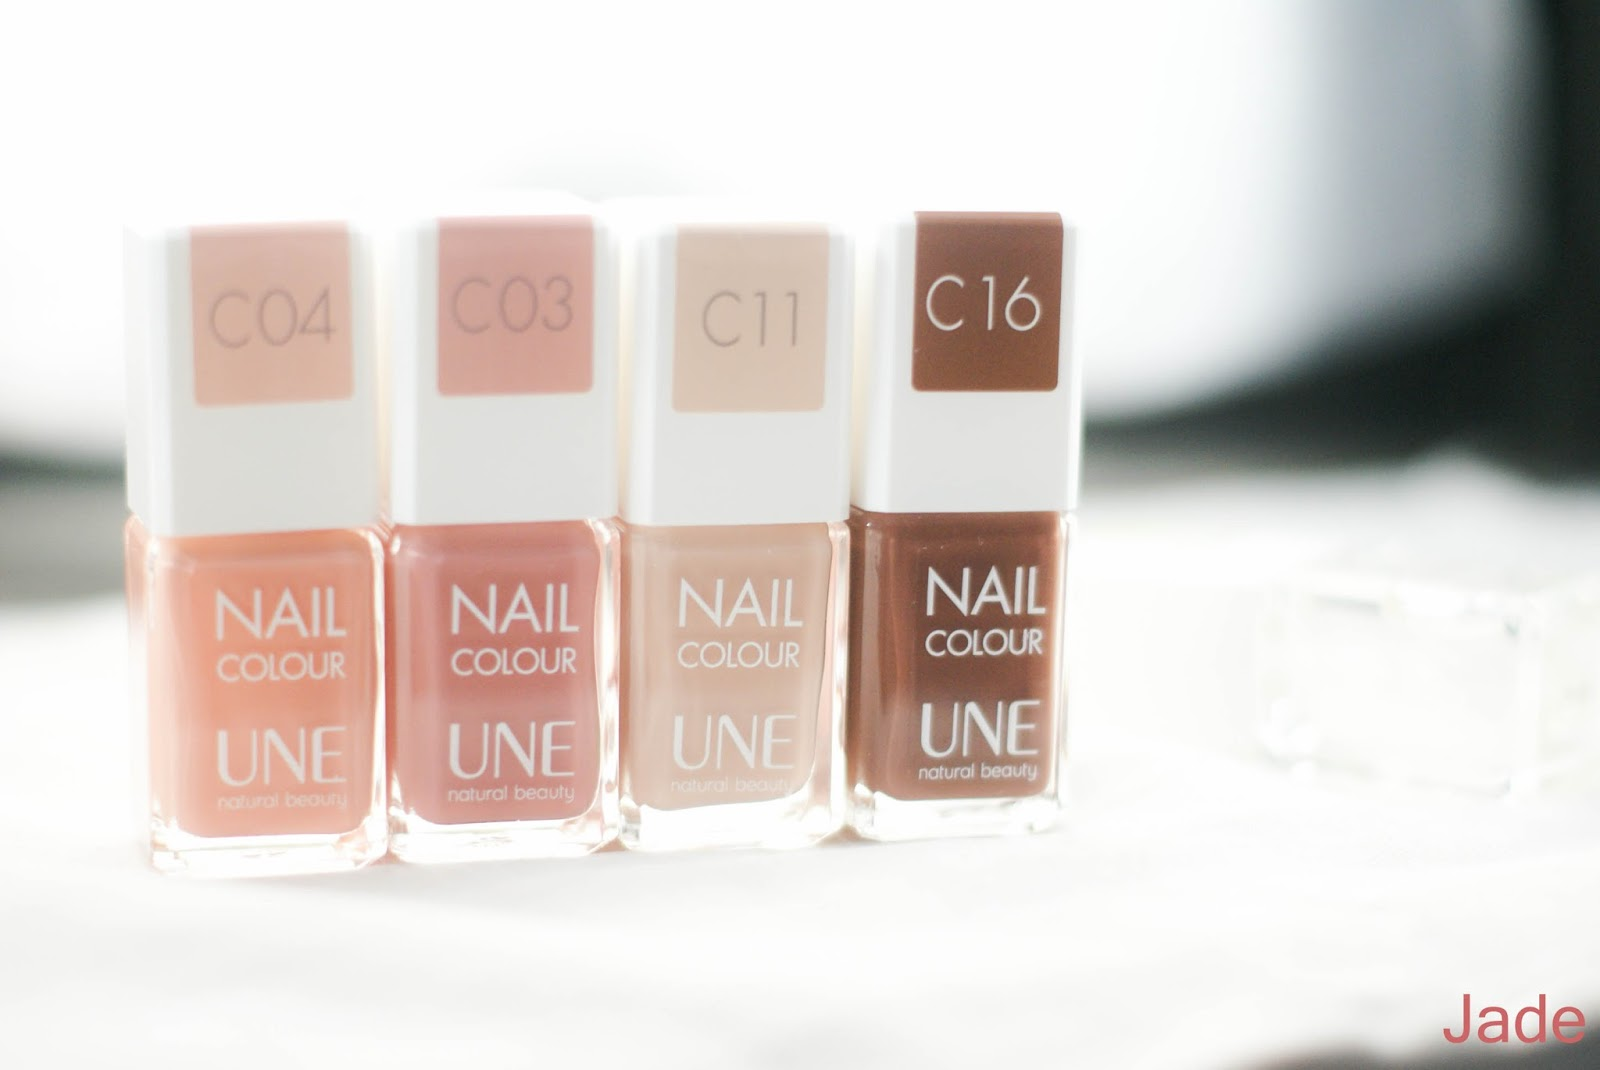 nouvelle collection vernis une beauty